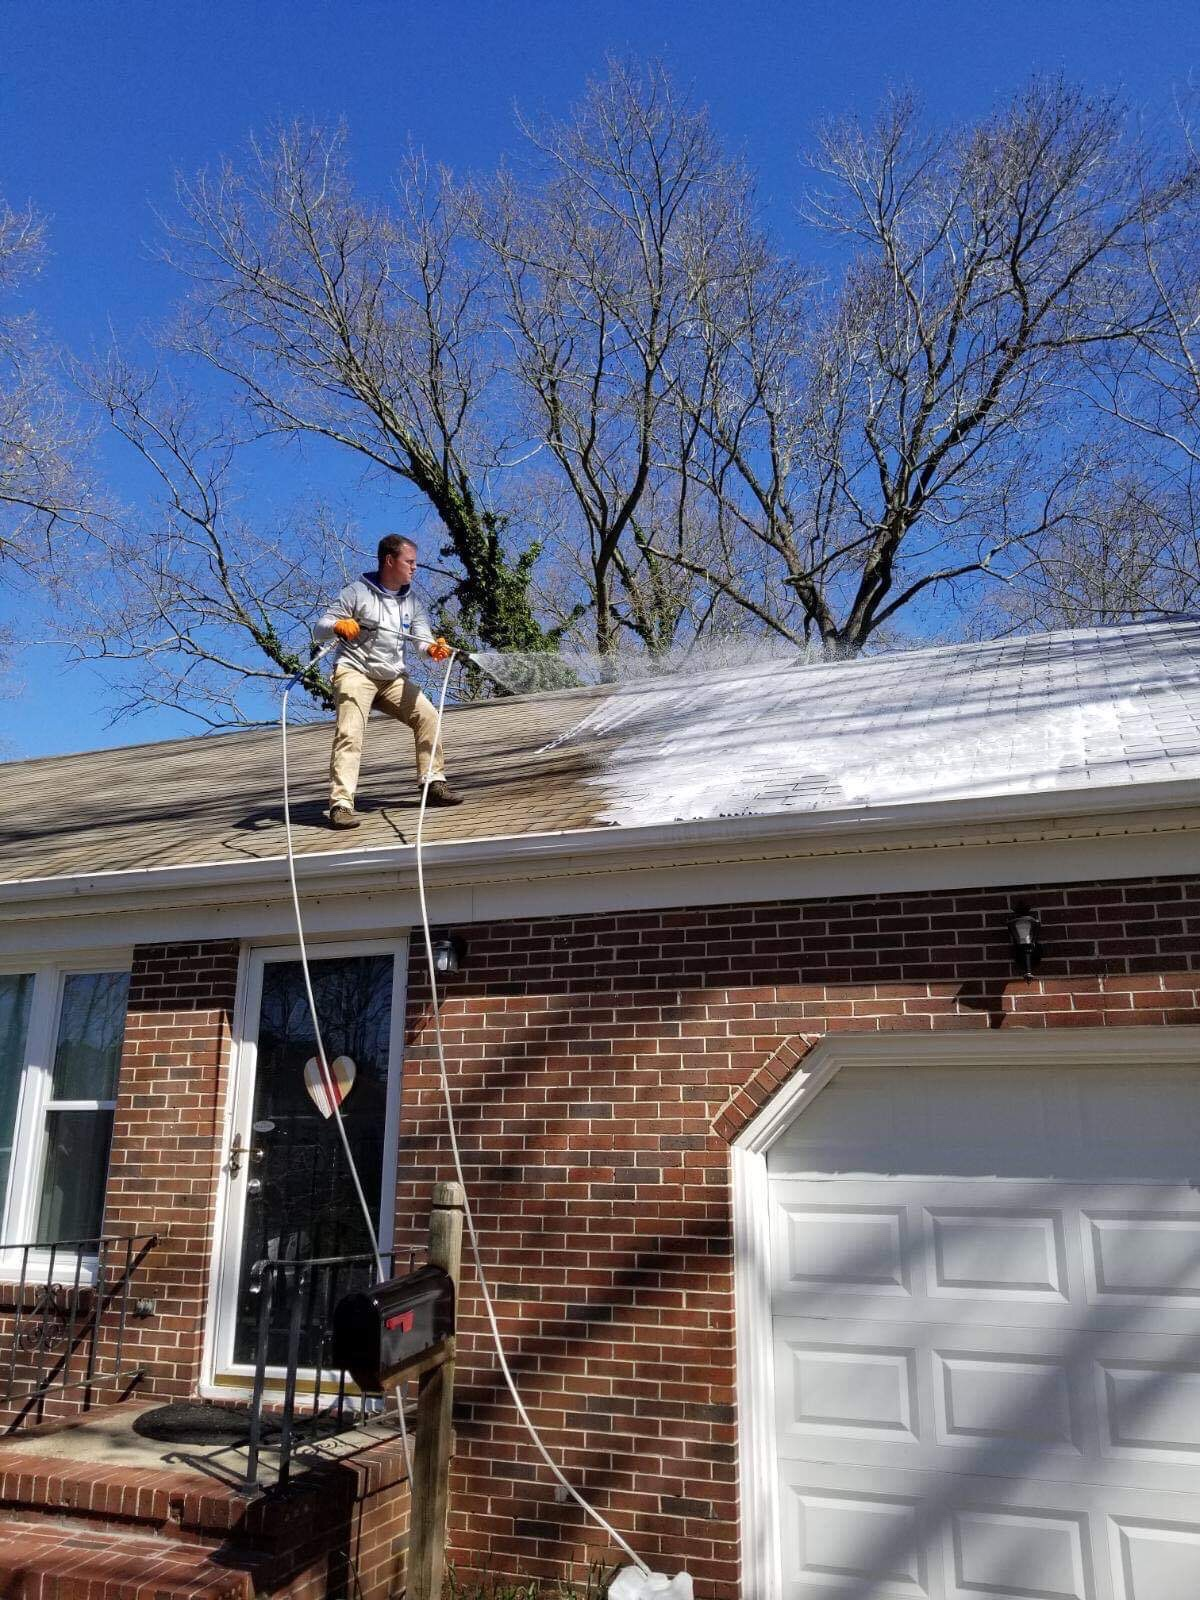 Roof Cleaning in Grafton VA, Roof Cleaning in Yorktown VA, Roof Cleaning in Acree Acres VA, Roof Cleaning in Tabb VA, Roof Cleaning in Seaford VA, Roof Cleaning in Williamsburg VA, Roof Cleaning in Poquoson VA, Roof Cleaning in Newport News VA, Roof Cleaning in Gloucester Point VA, Roof Cleaning in Hampton VA, Roof Cleaning in Carrollton VA, Roof Cleaning in Virginia Beach VA, Roof Cleaning in Chesapeake VA, Roof Cleaning in Norfolk VA, Roof Cleaning in Portsmouth VA